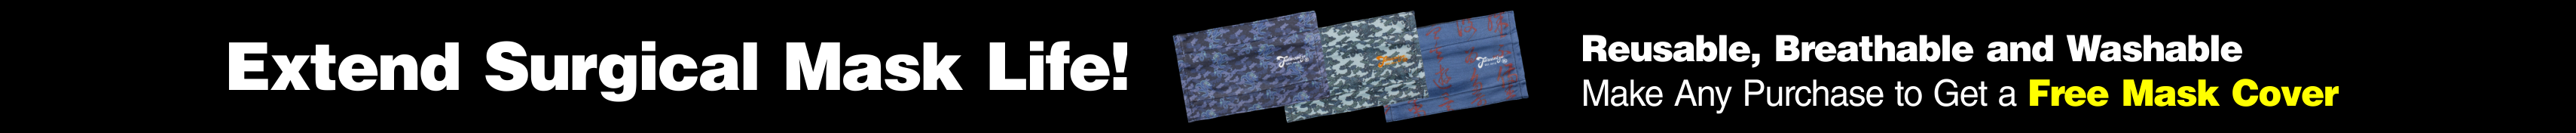 mask cover, extend surgical mask life, freebie, Taiwanize